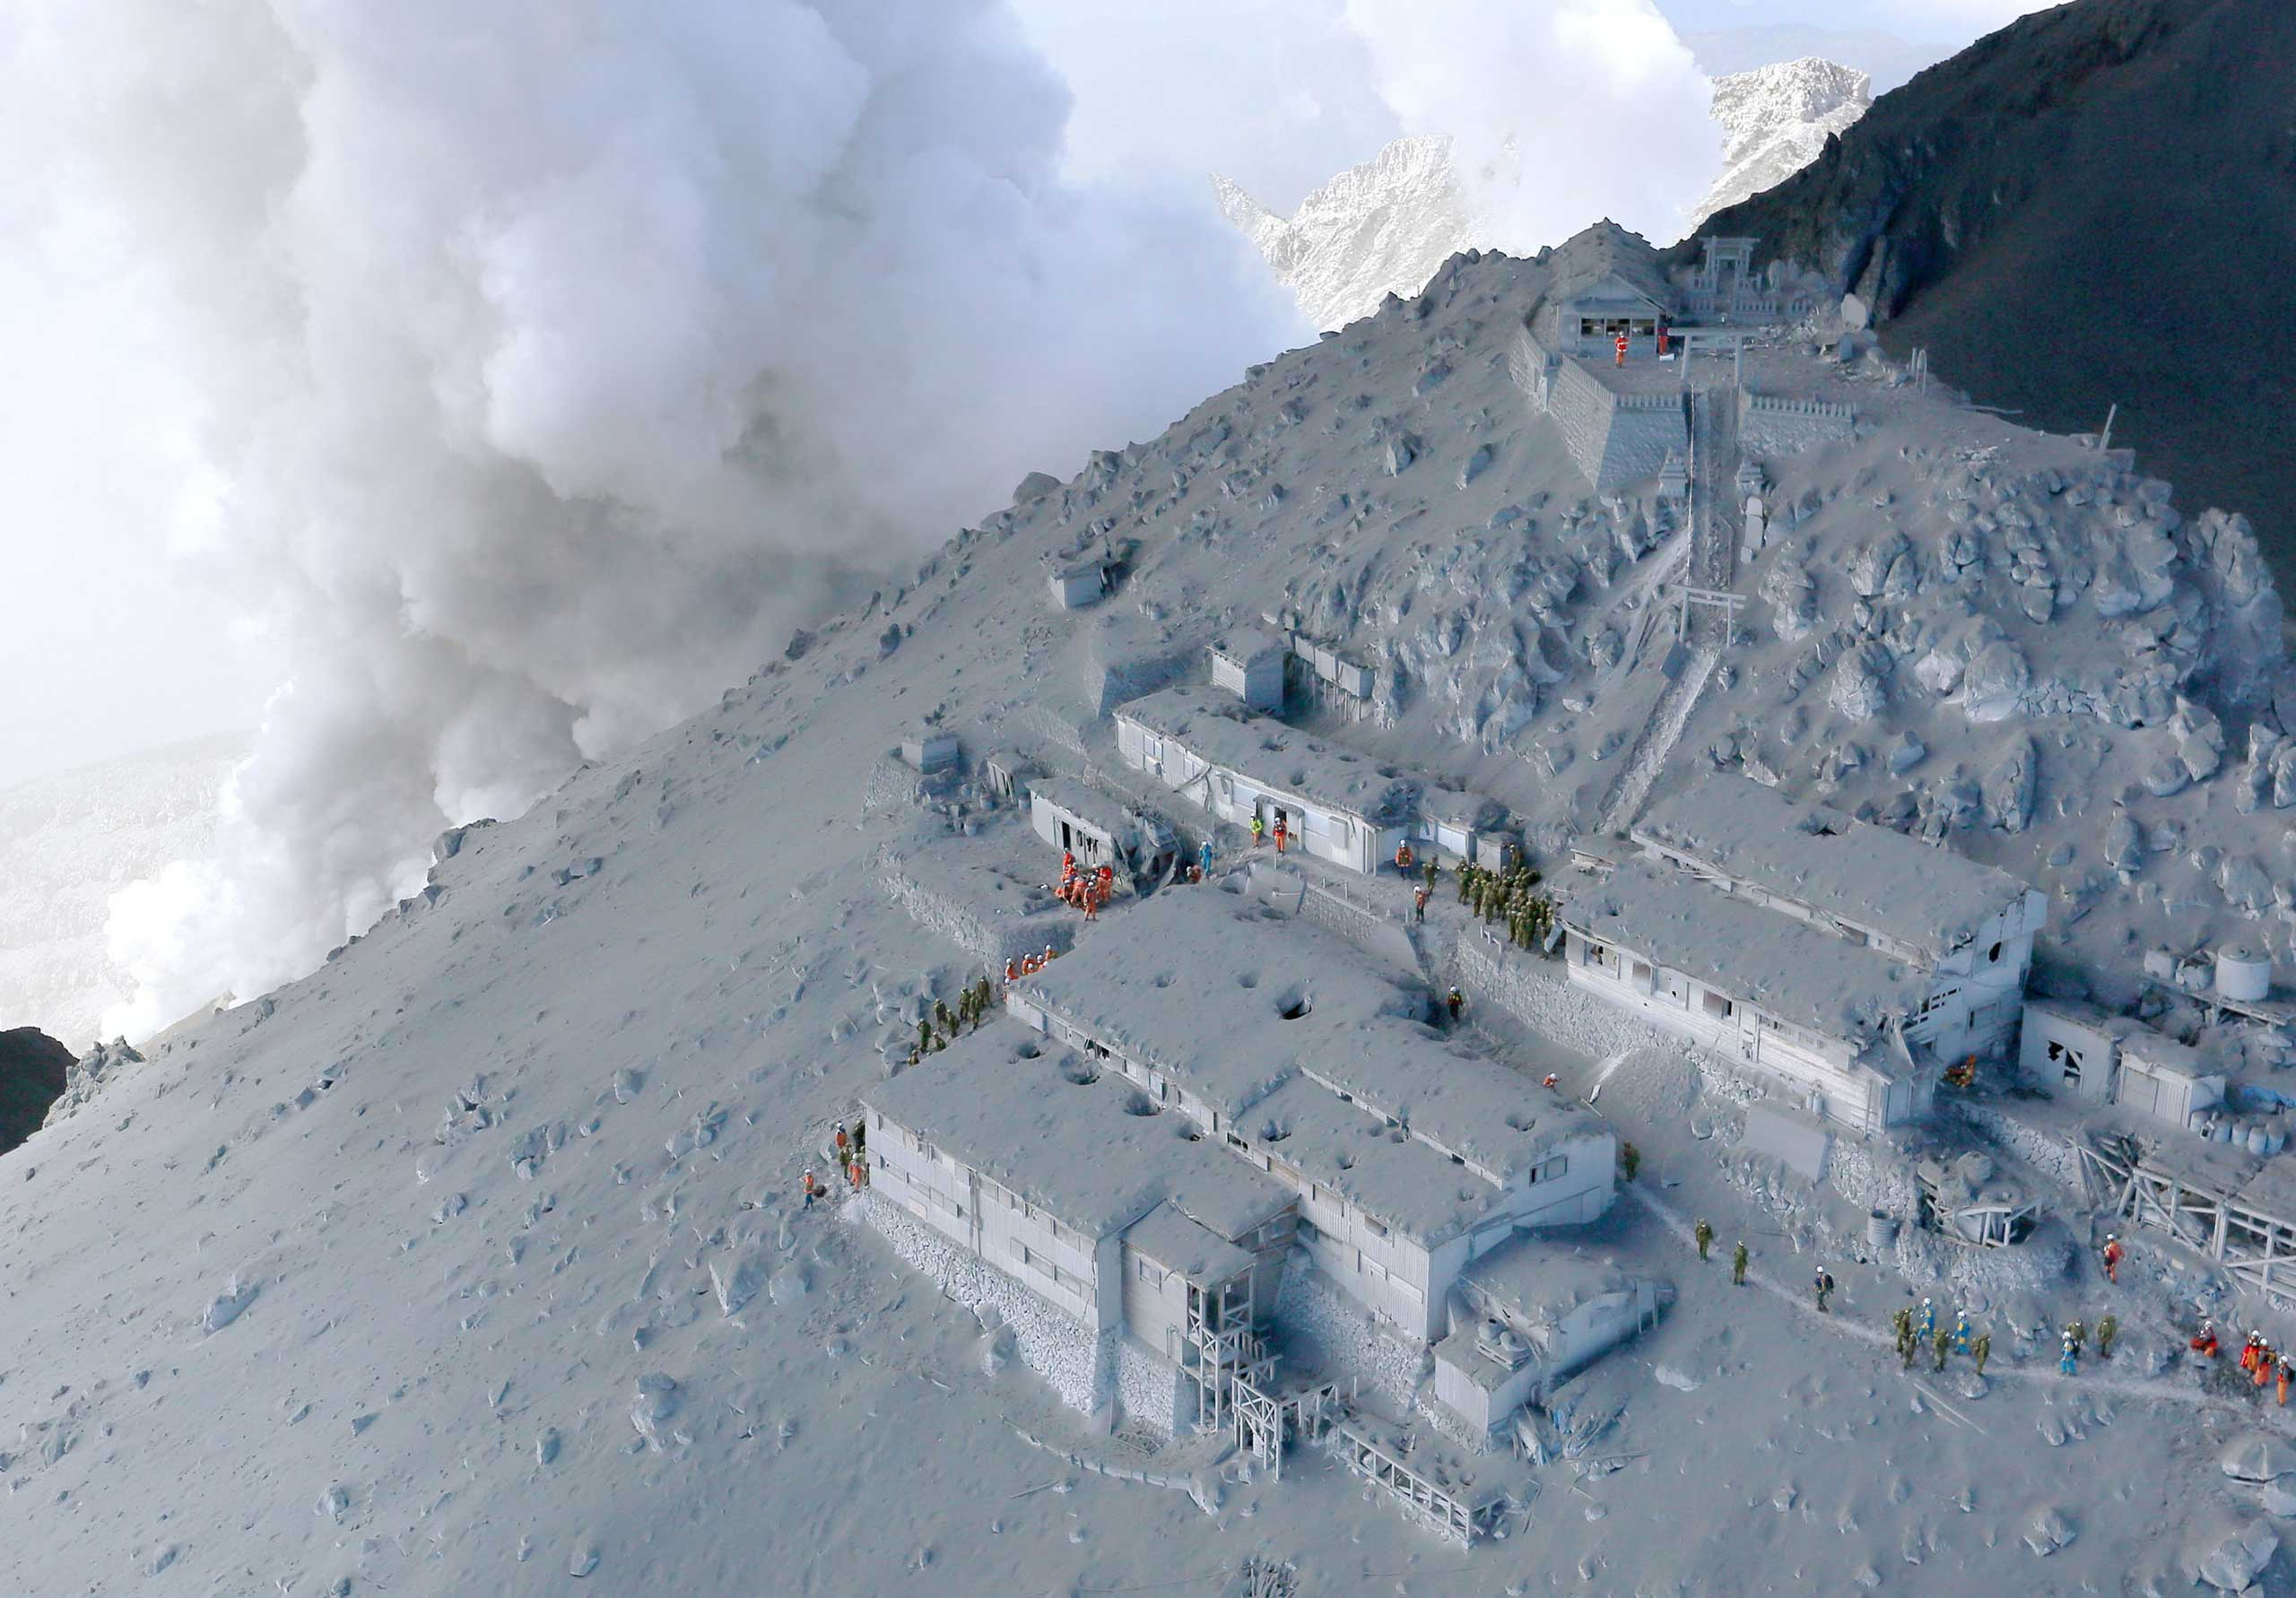 Mountain lodges near the top of Mt. Ontake in Tokyo, Japan are covered in volcano ash, Sept. 28, 2014.